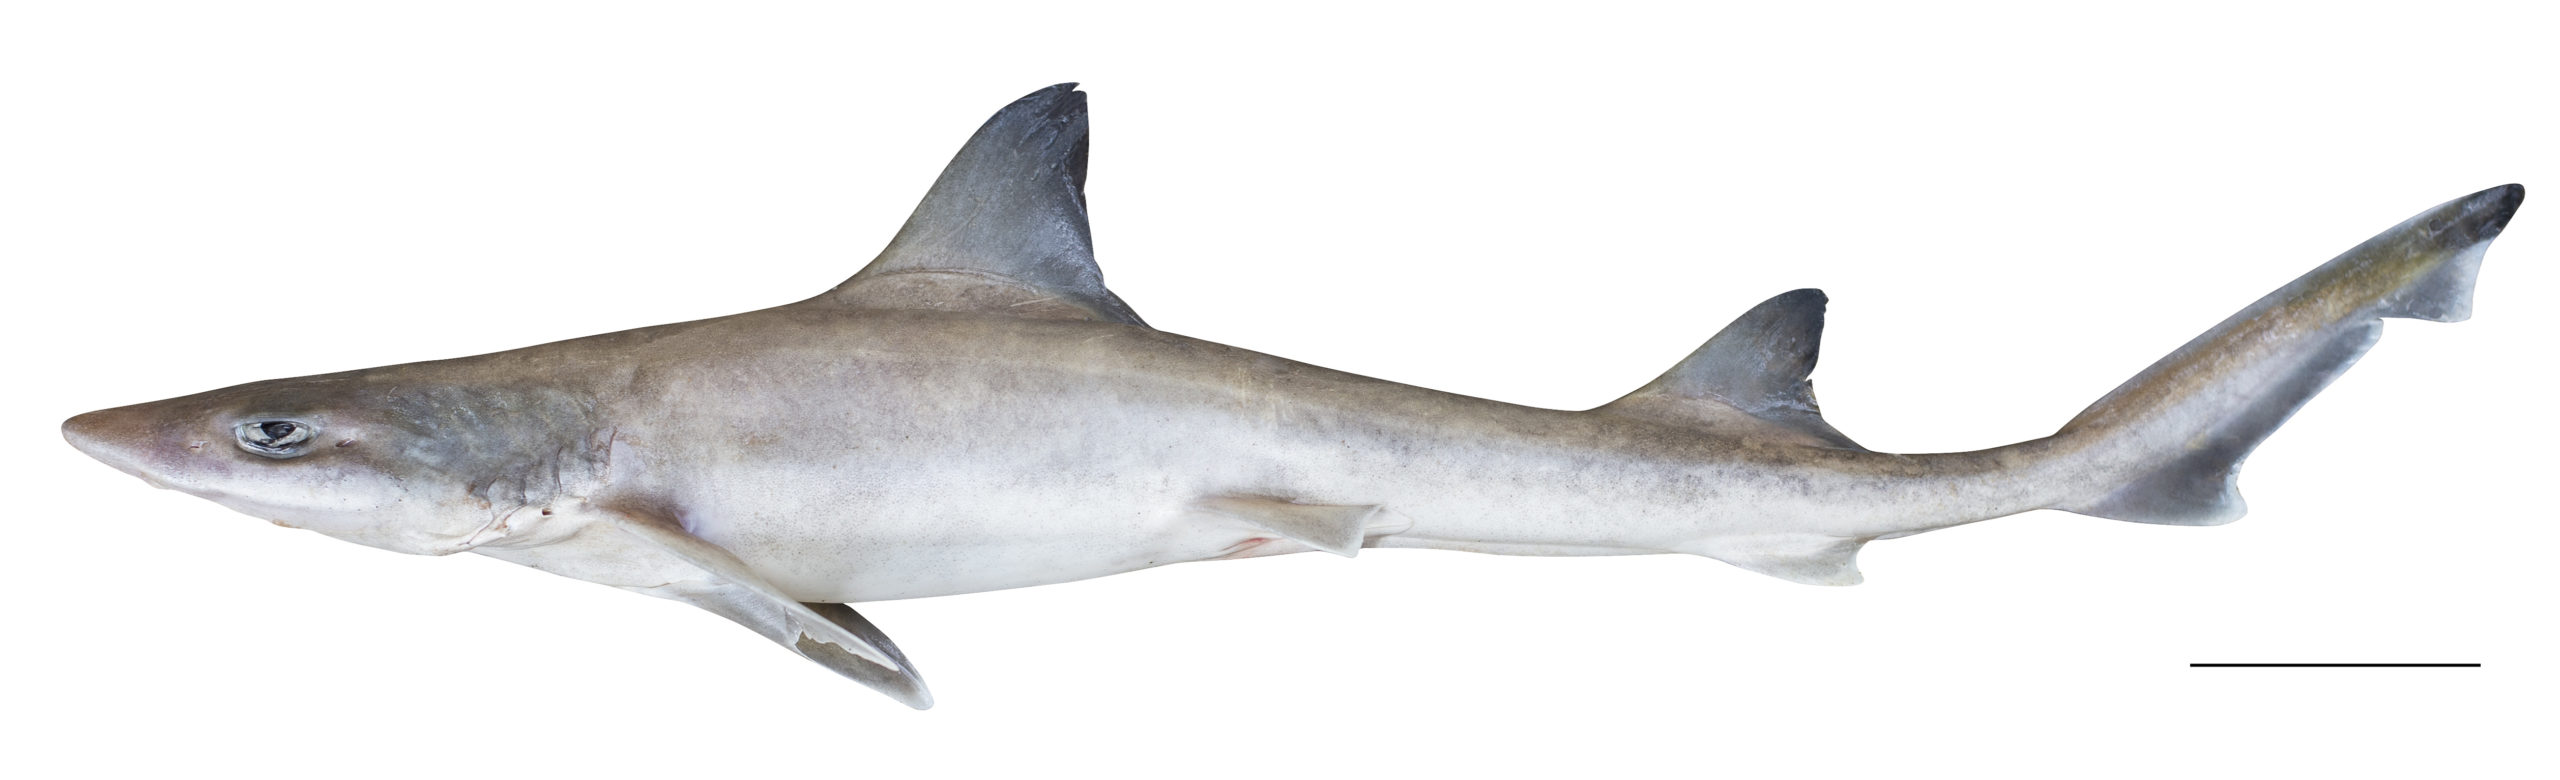 A small grey shark against a white background.